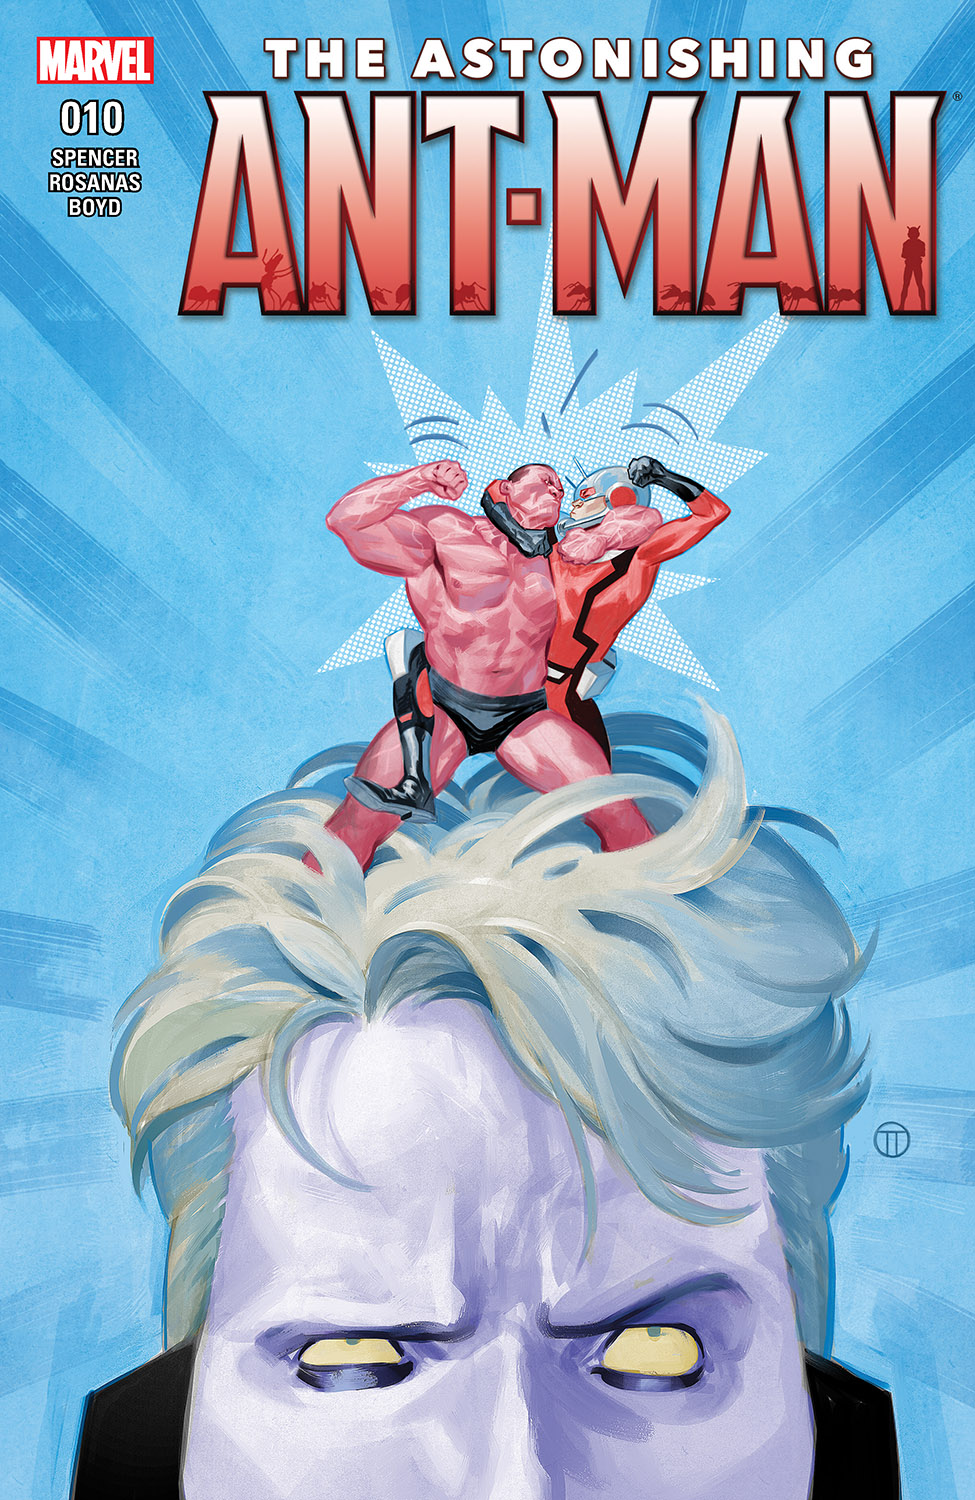 The Astonishing Ant-Man (2015) #10